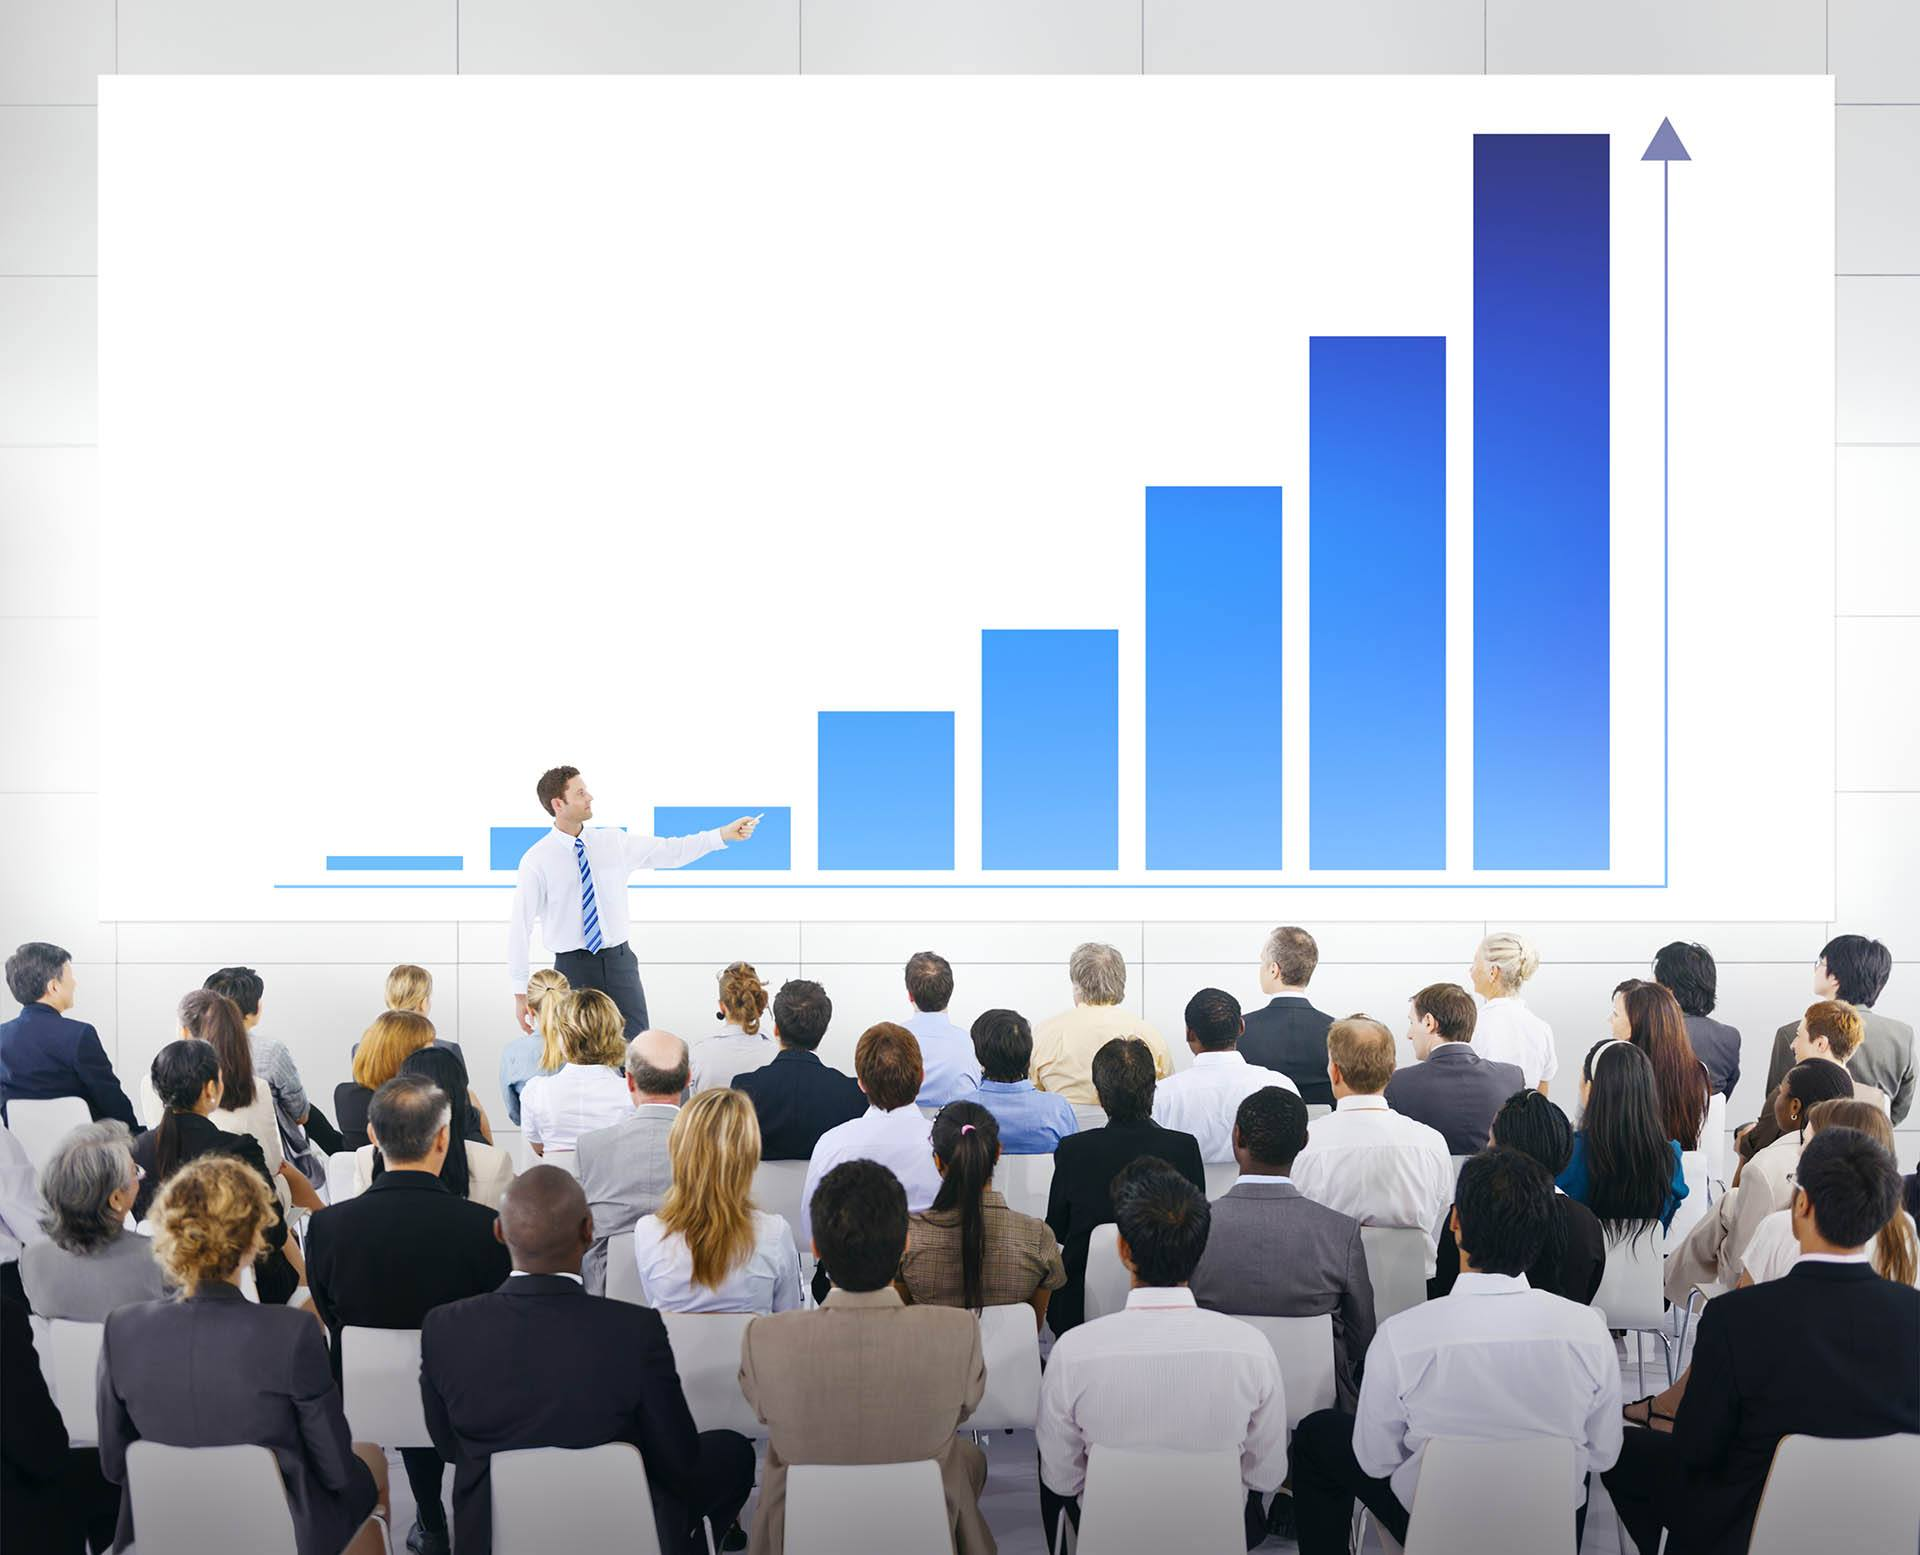 Crowded presentation in large conference meeting room